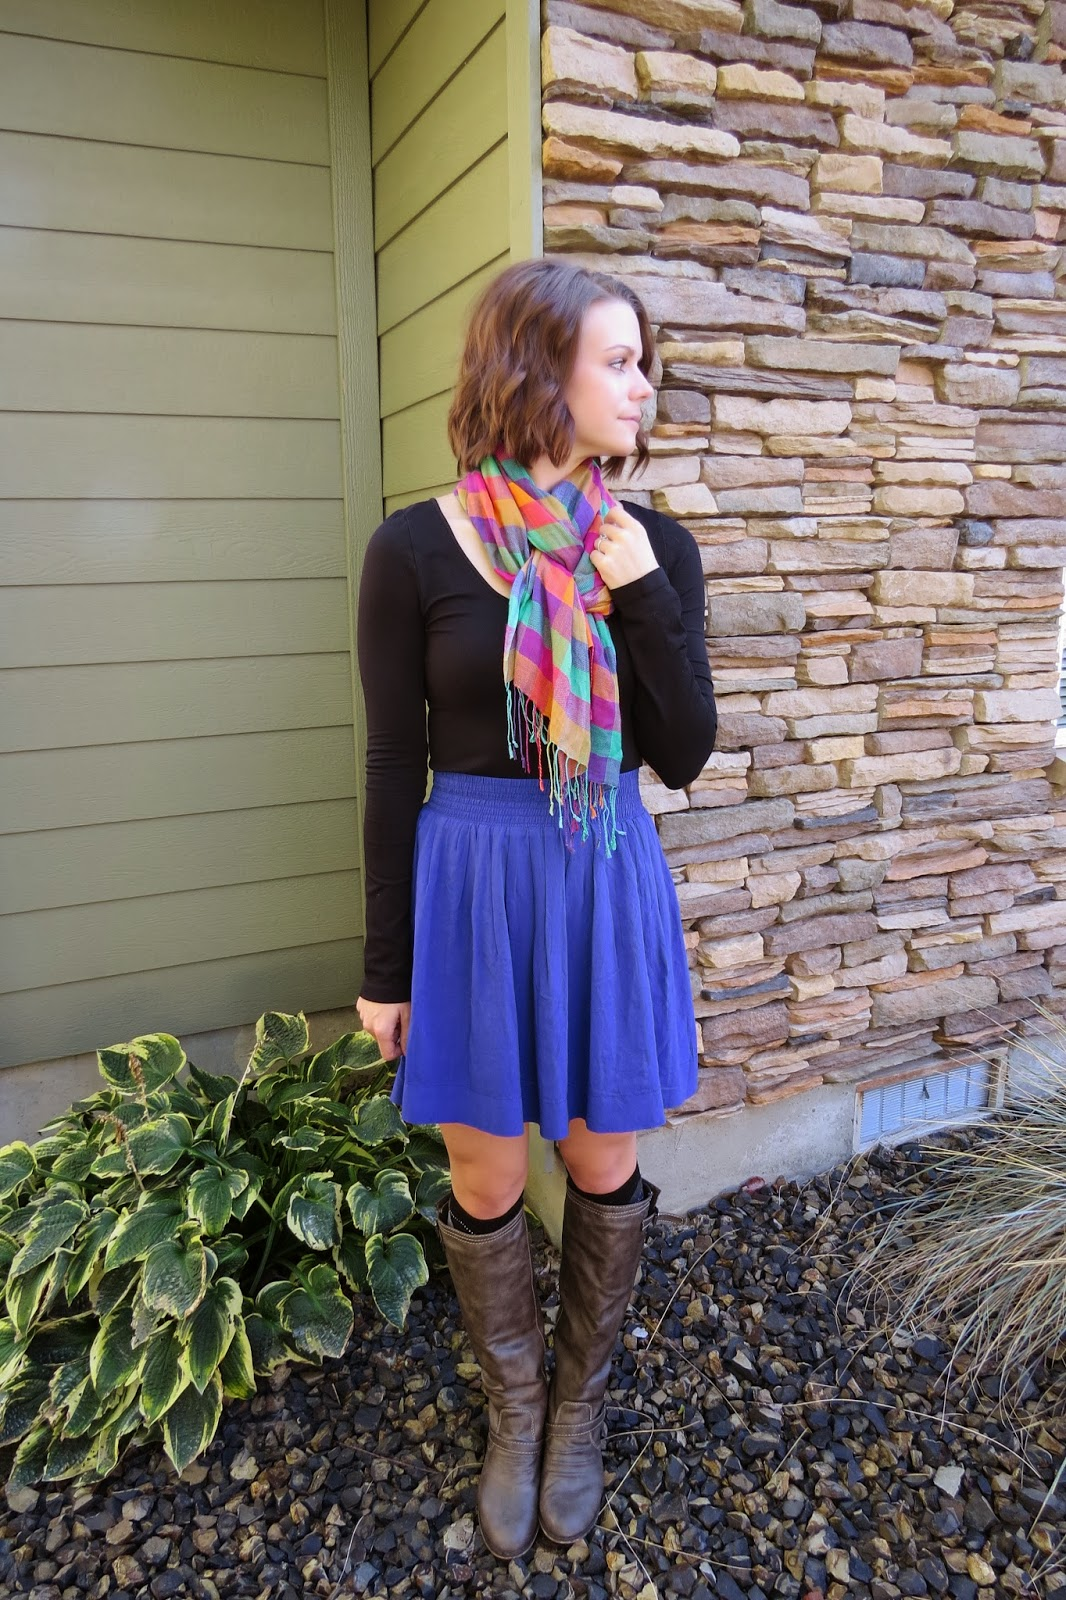 High-waisted skirt and boots, bright plain scarf and argyle knee socks